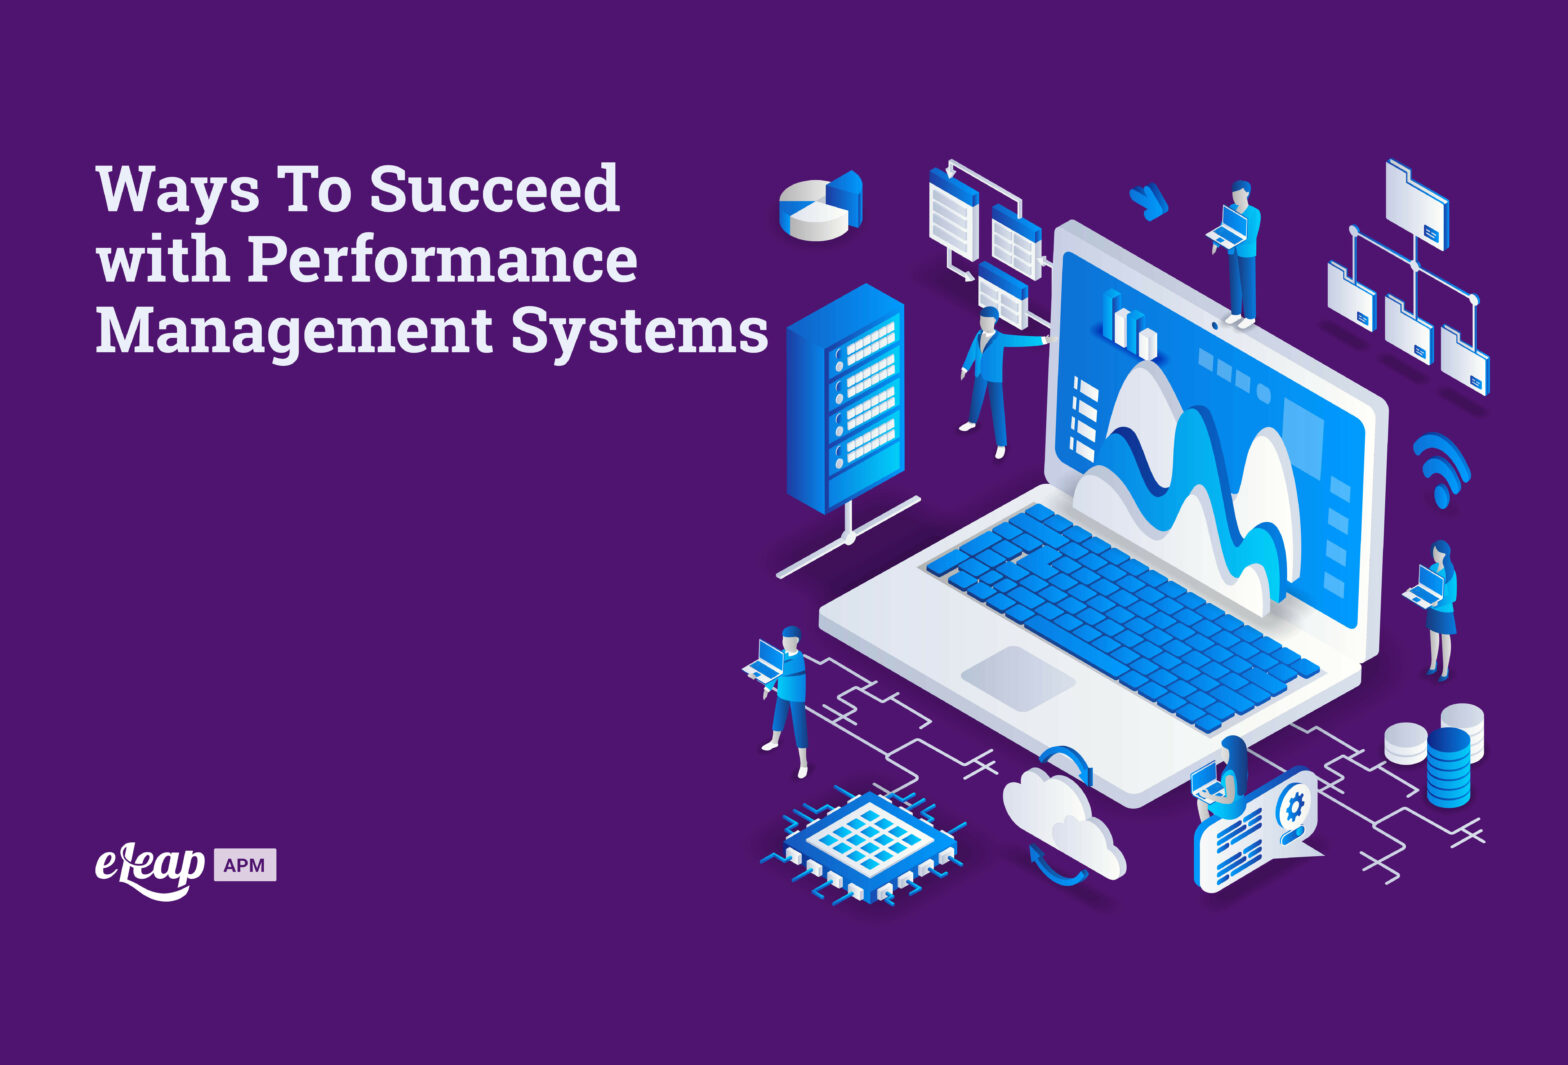 Ways To Succeed with Performance Management Systems